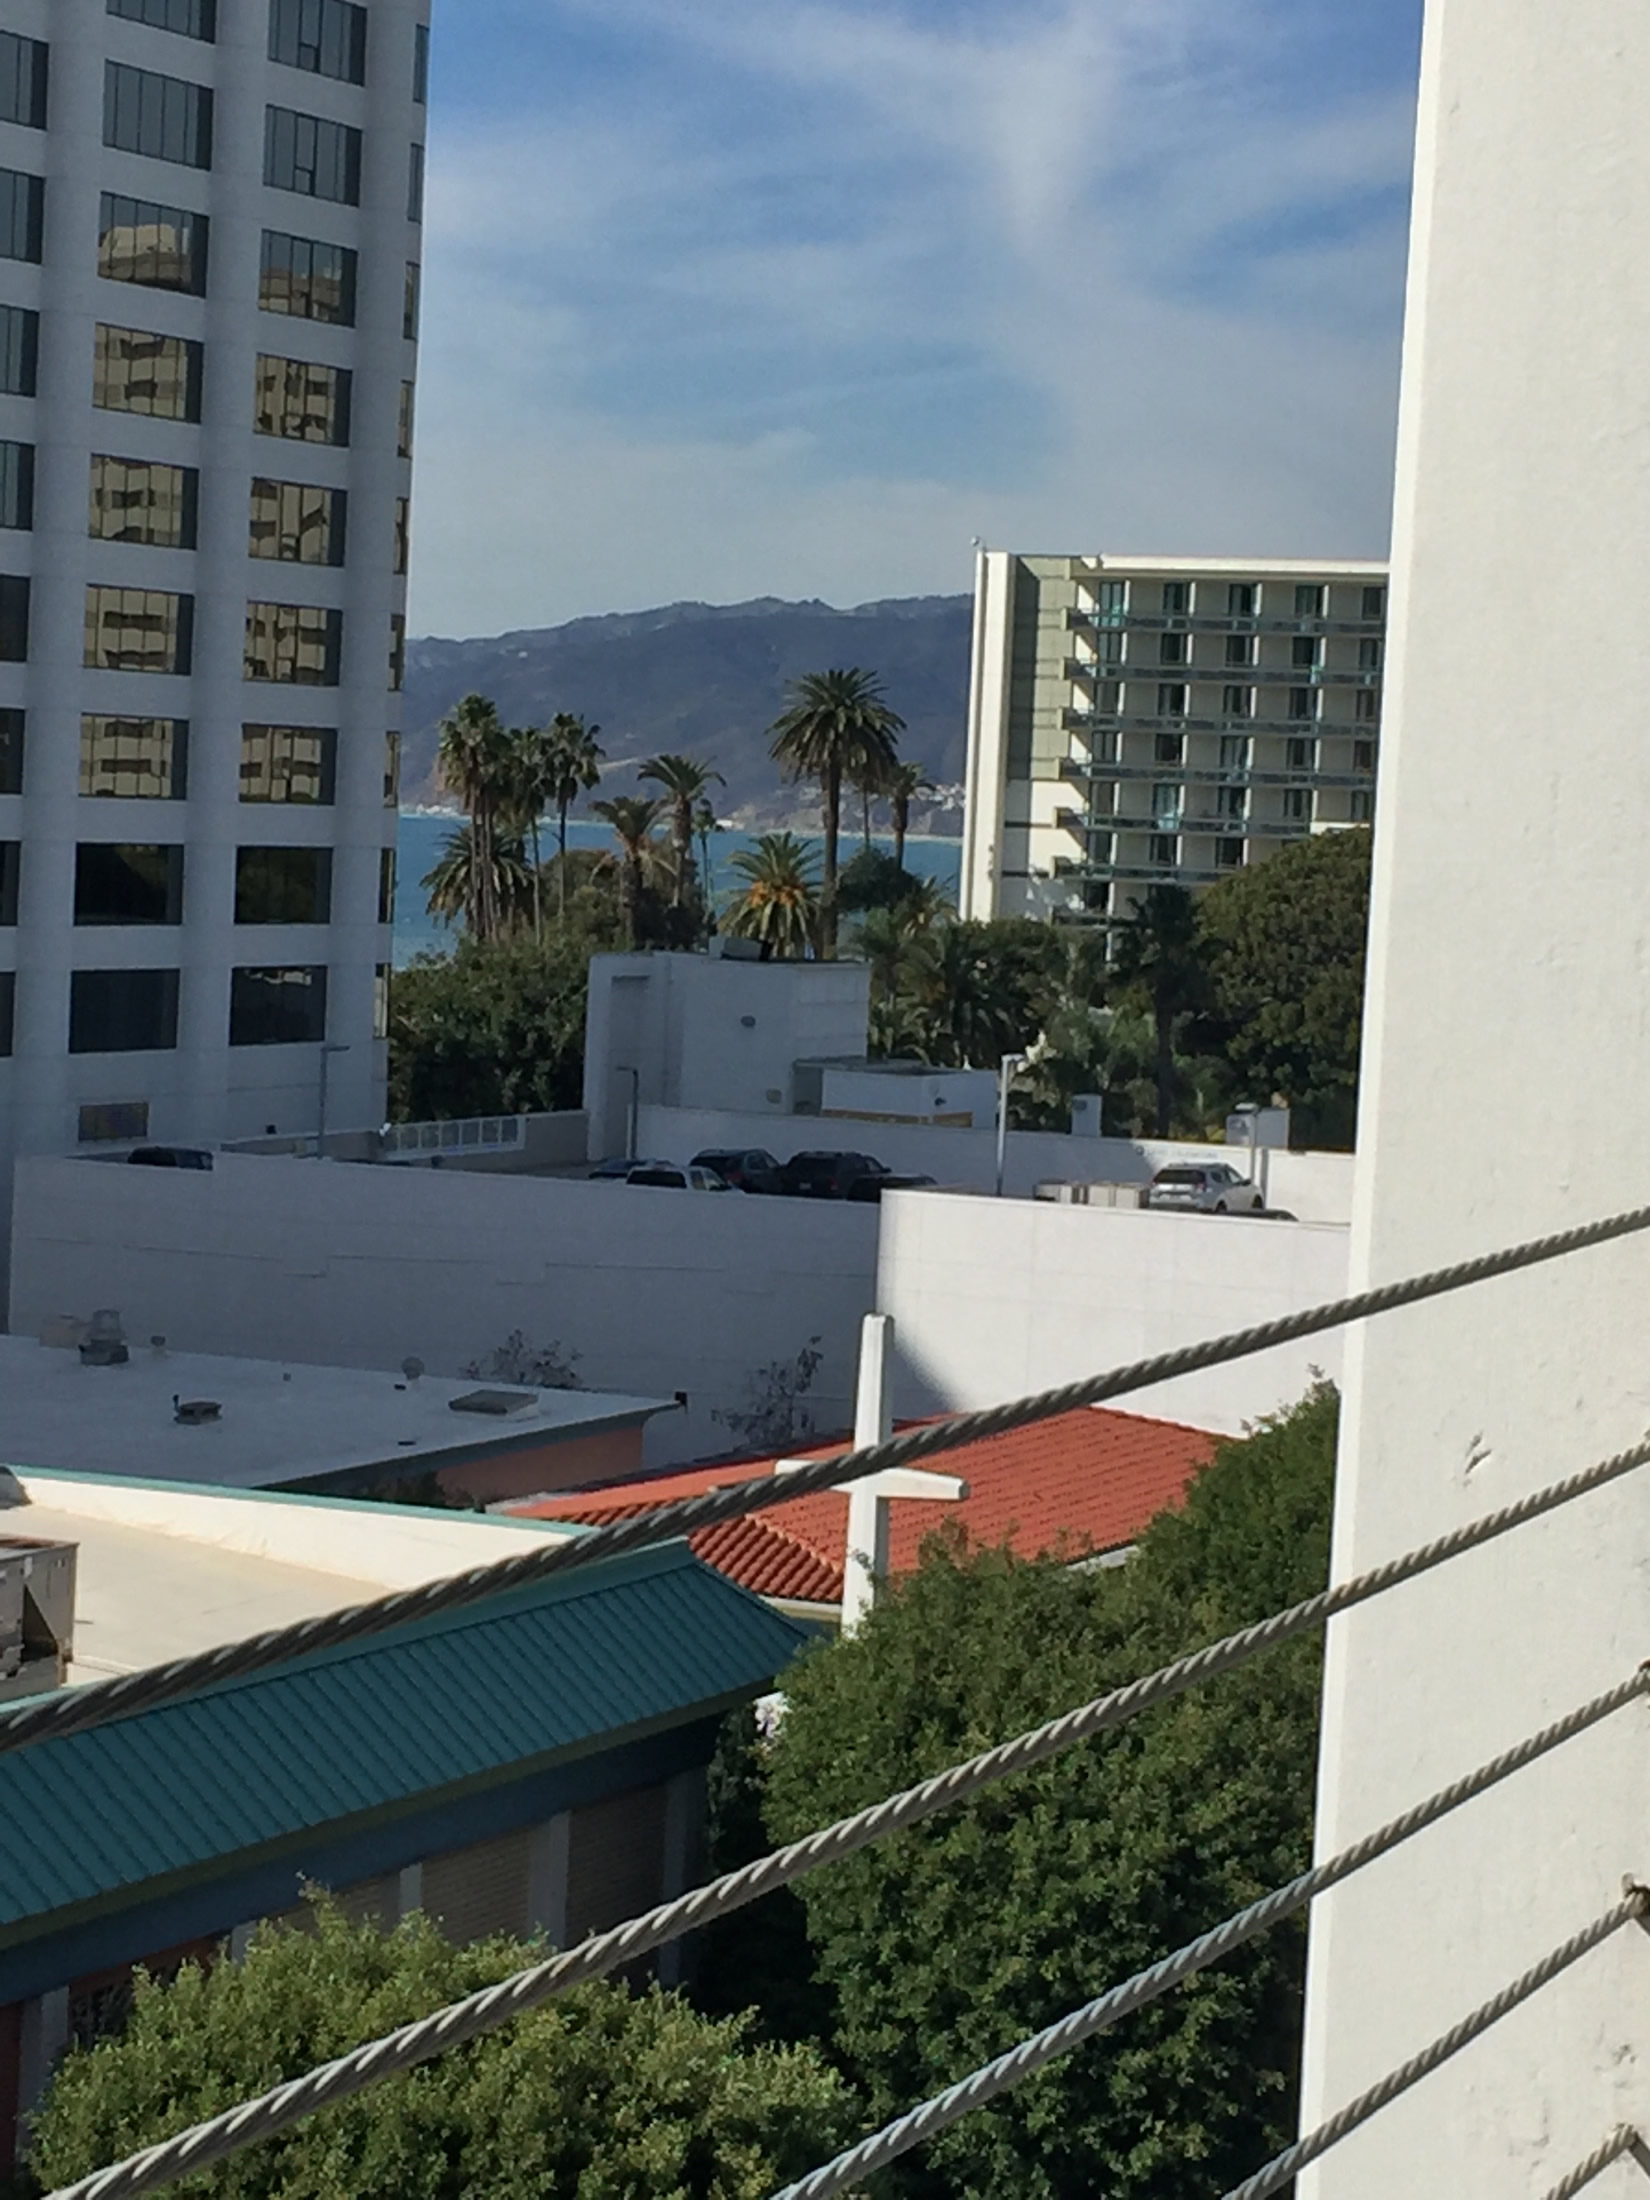 Image 19. Santa Monica (the city), the Santa Monica Mountains (background), and the Pacific Ocean (from a parking structure in Santa Monica, California, USA). Photo by Adelle Hersh, 21 January 2016. Used with permission.